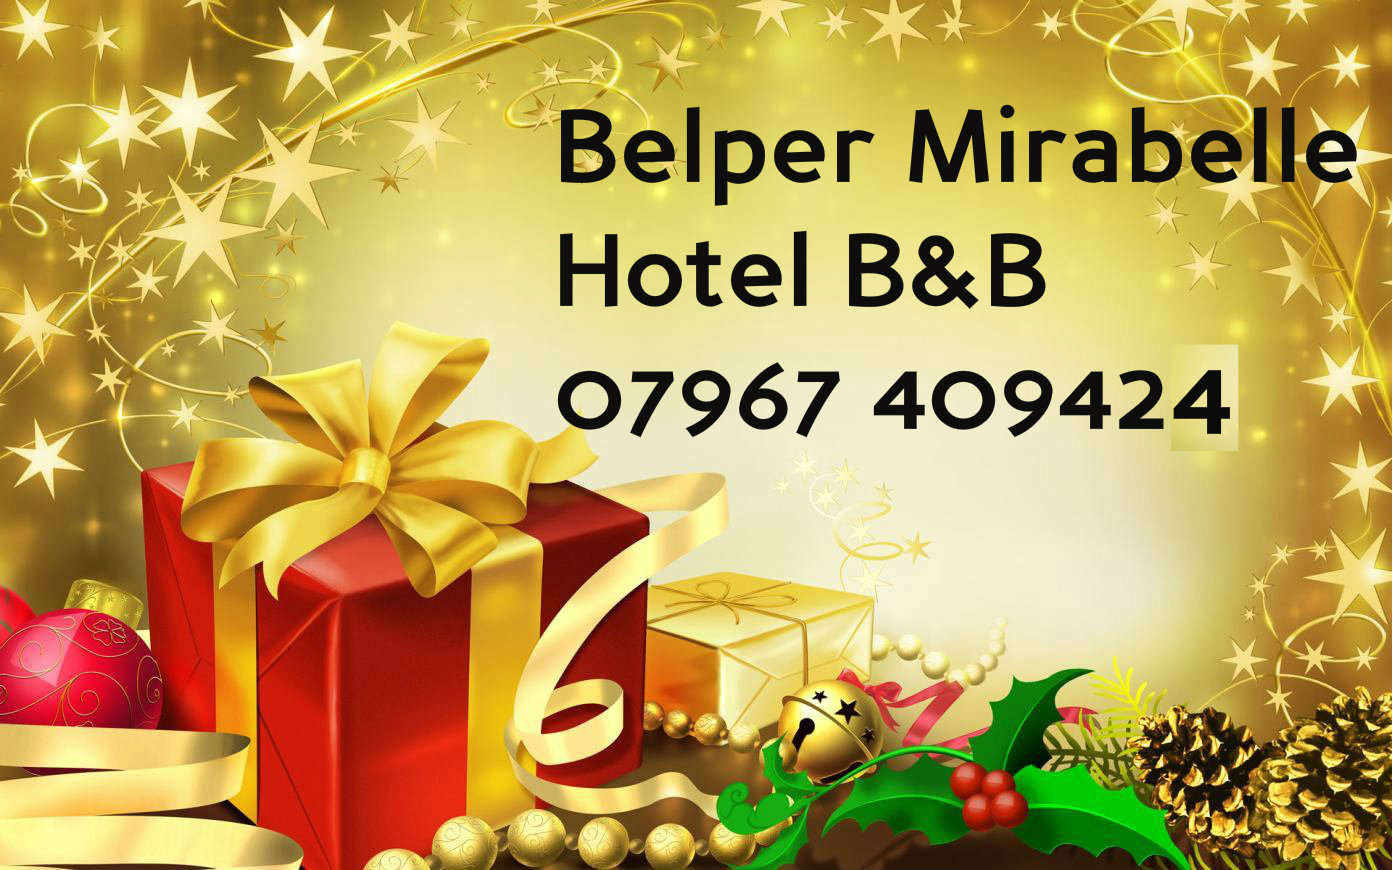 Bed And Breakfast Matlock Dss Accepted Belper Bed And Breakfast Hotel Derbyshire B B